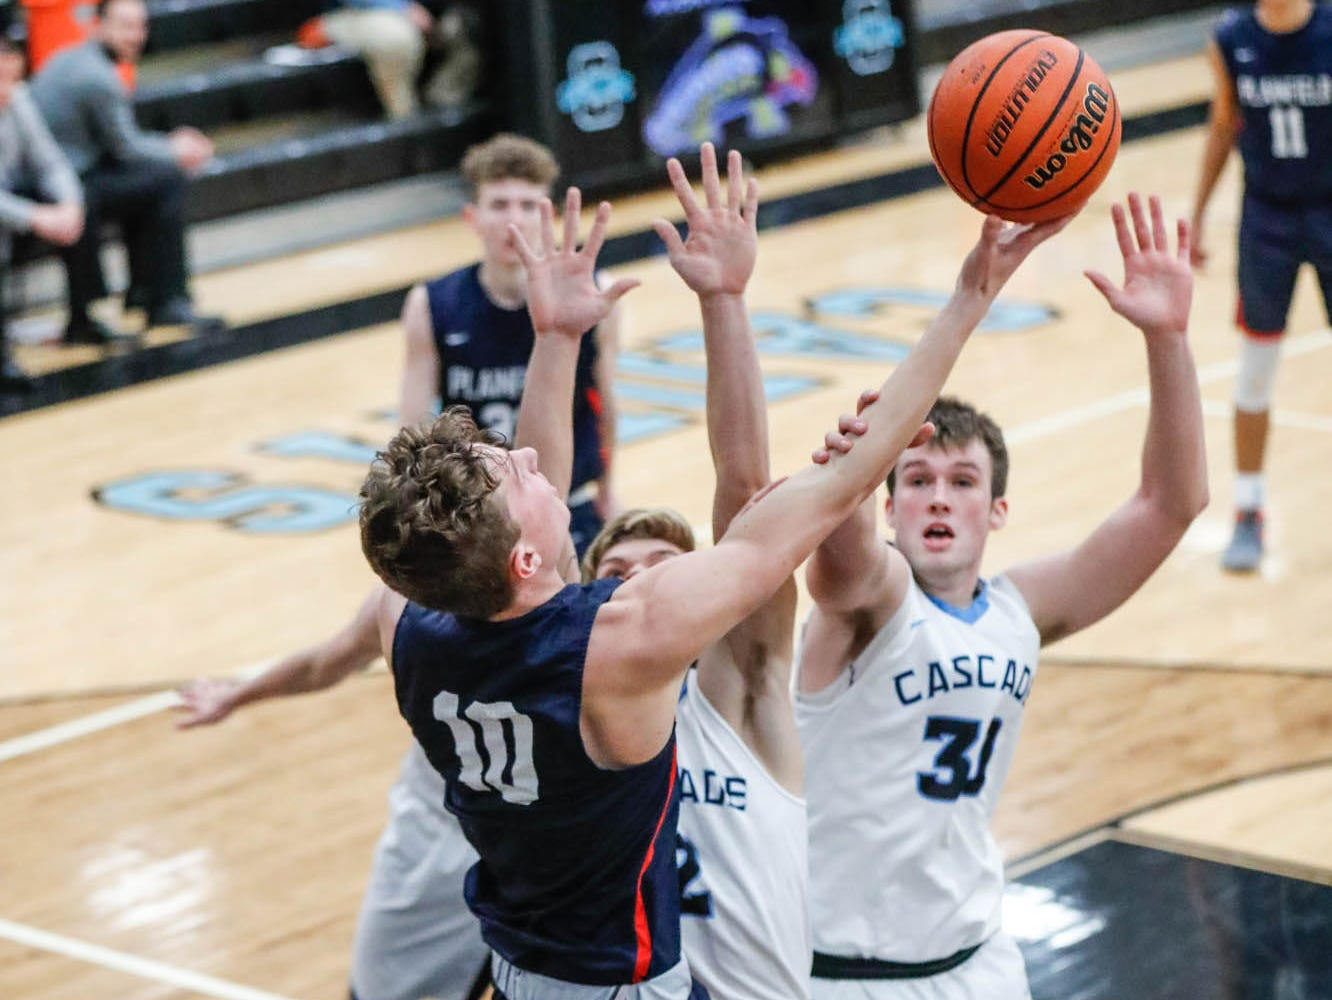 Plainfield High School's forward Cade East (10), attempts a hook shot around Cascade High School's Benson Walker (30), and Cascade High School's A.J. Sanders (2), during a 2019 Hendricks County Basketball Tournament game between Plainfield High School and Cascade High School, held at Cascade on Wednesday, Jan. 2, 2019.